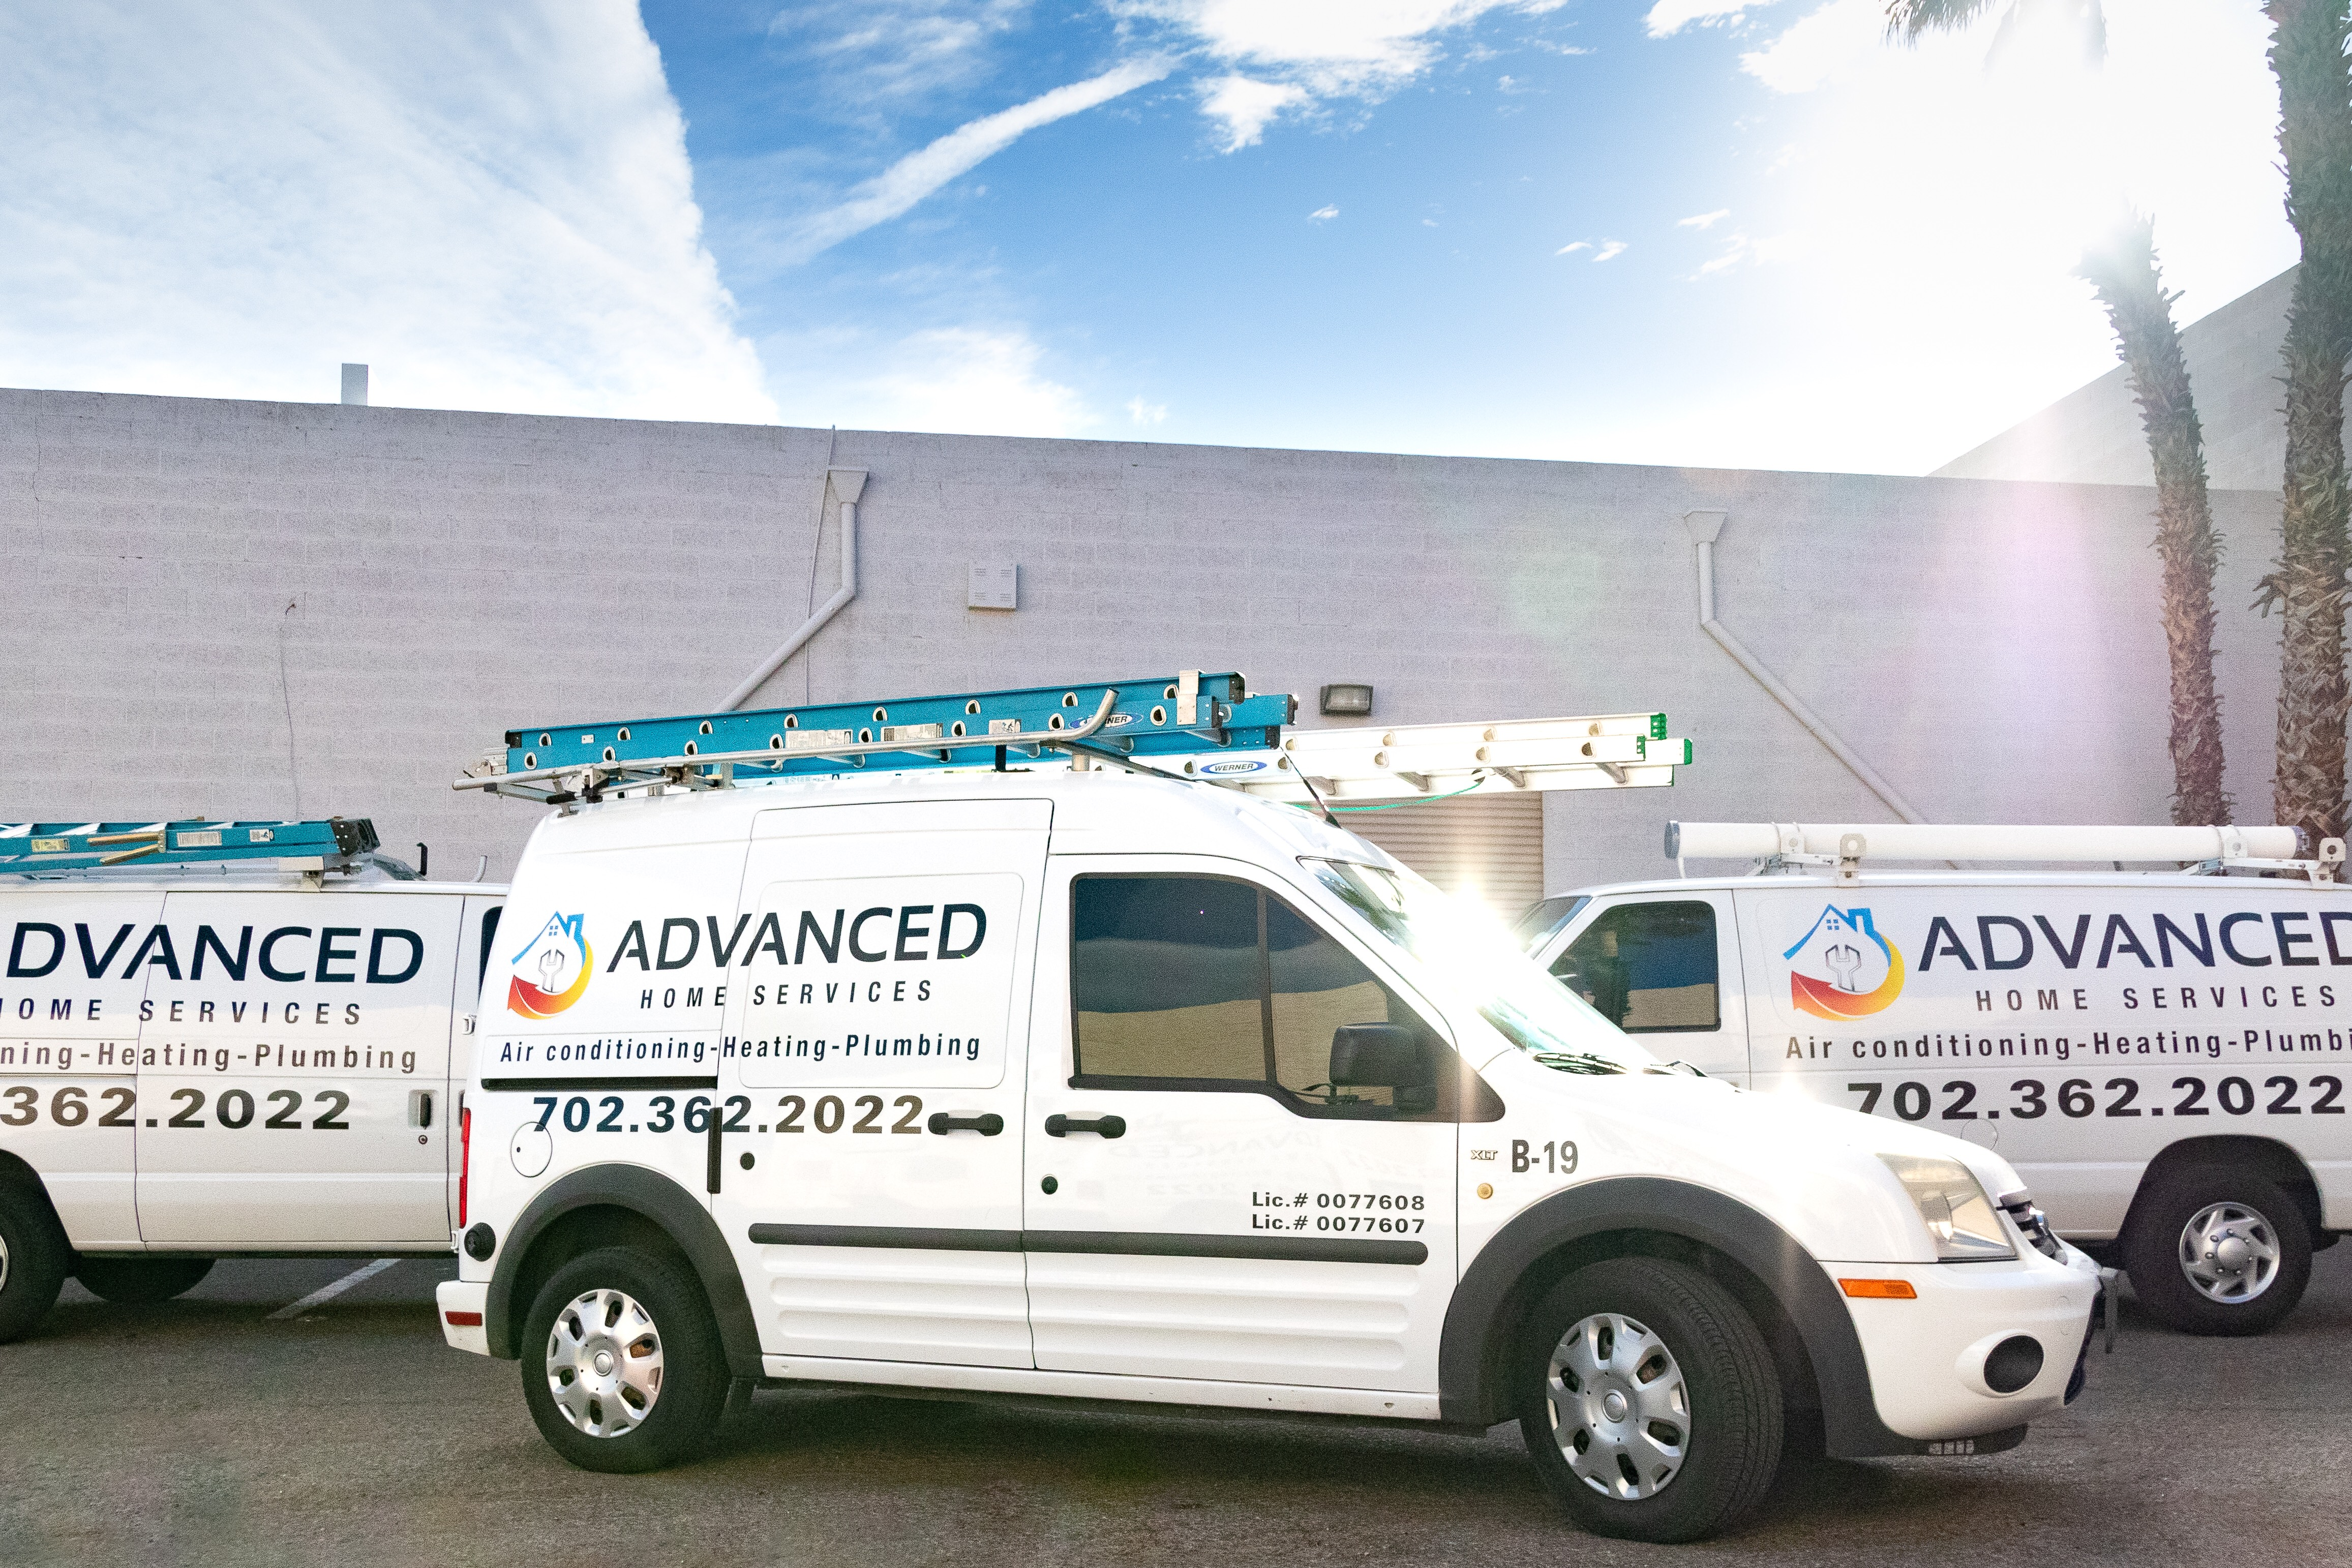 Advanced Home Services vehicle fleet